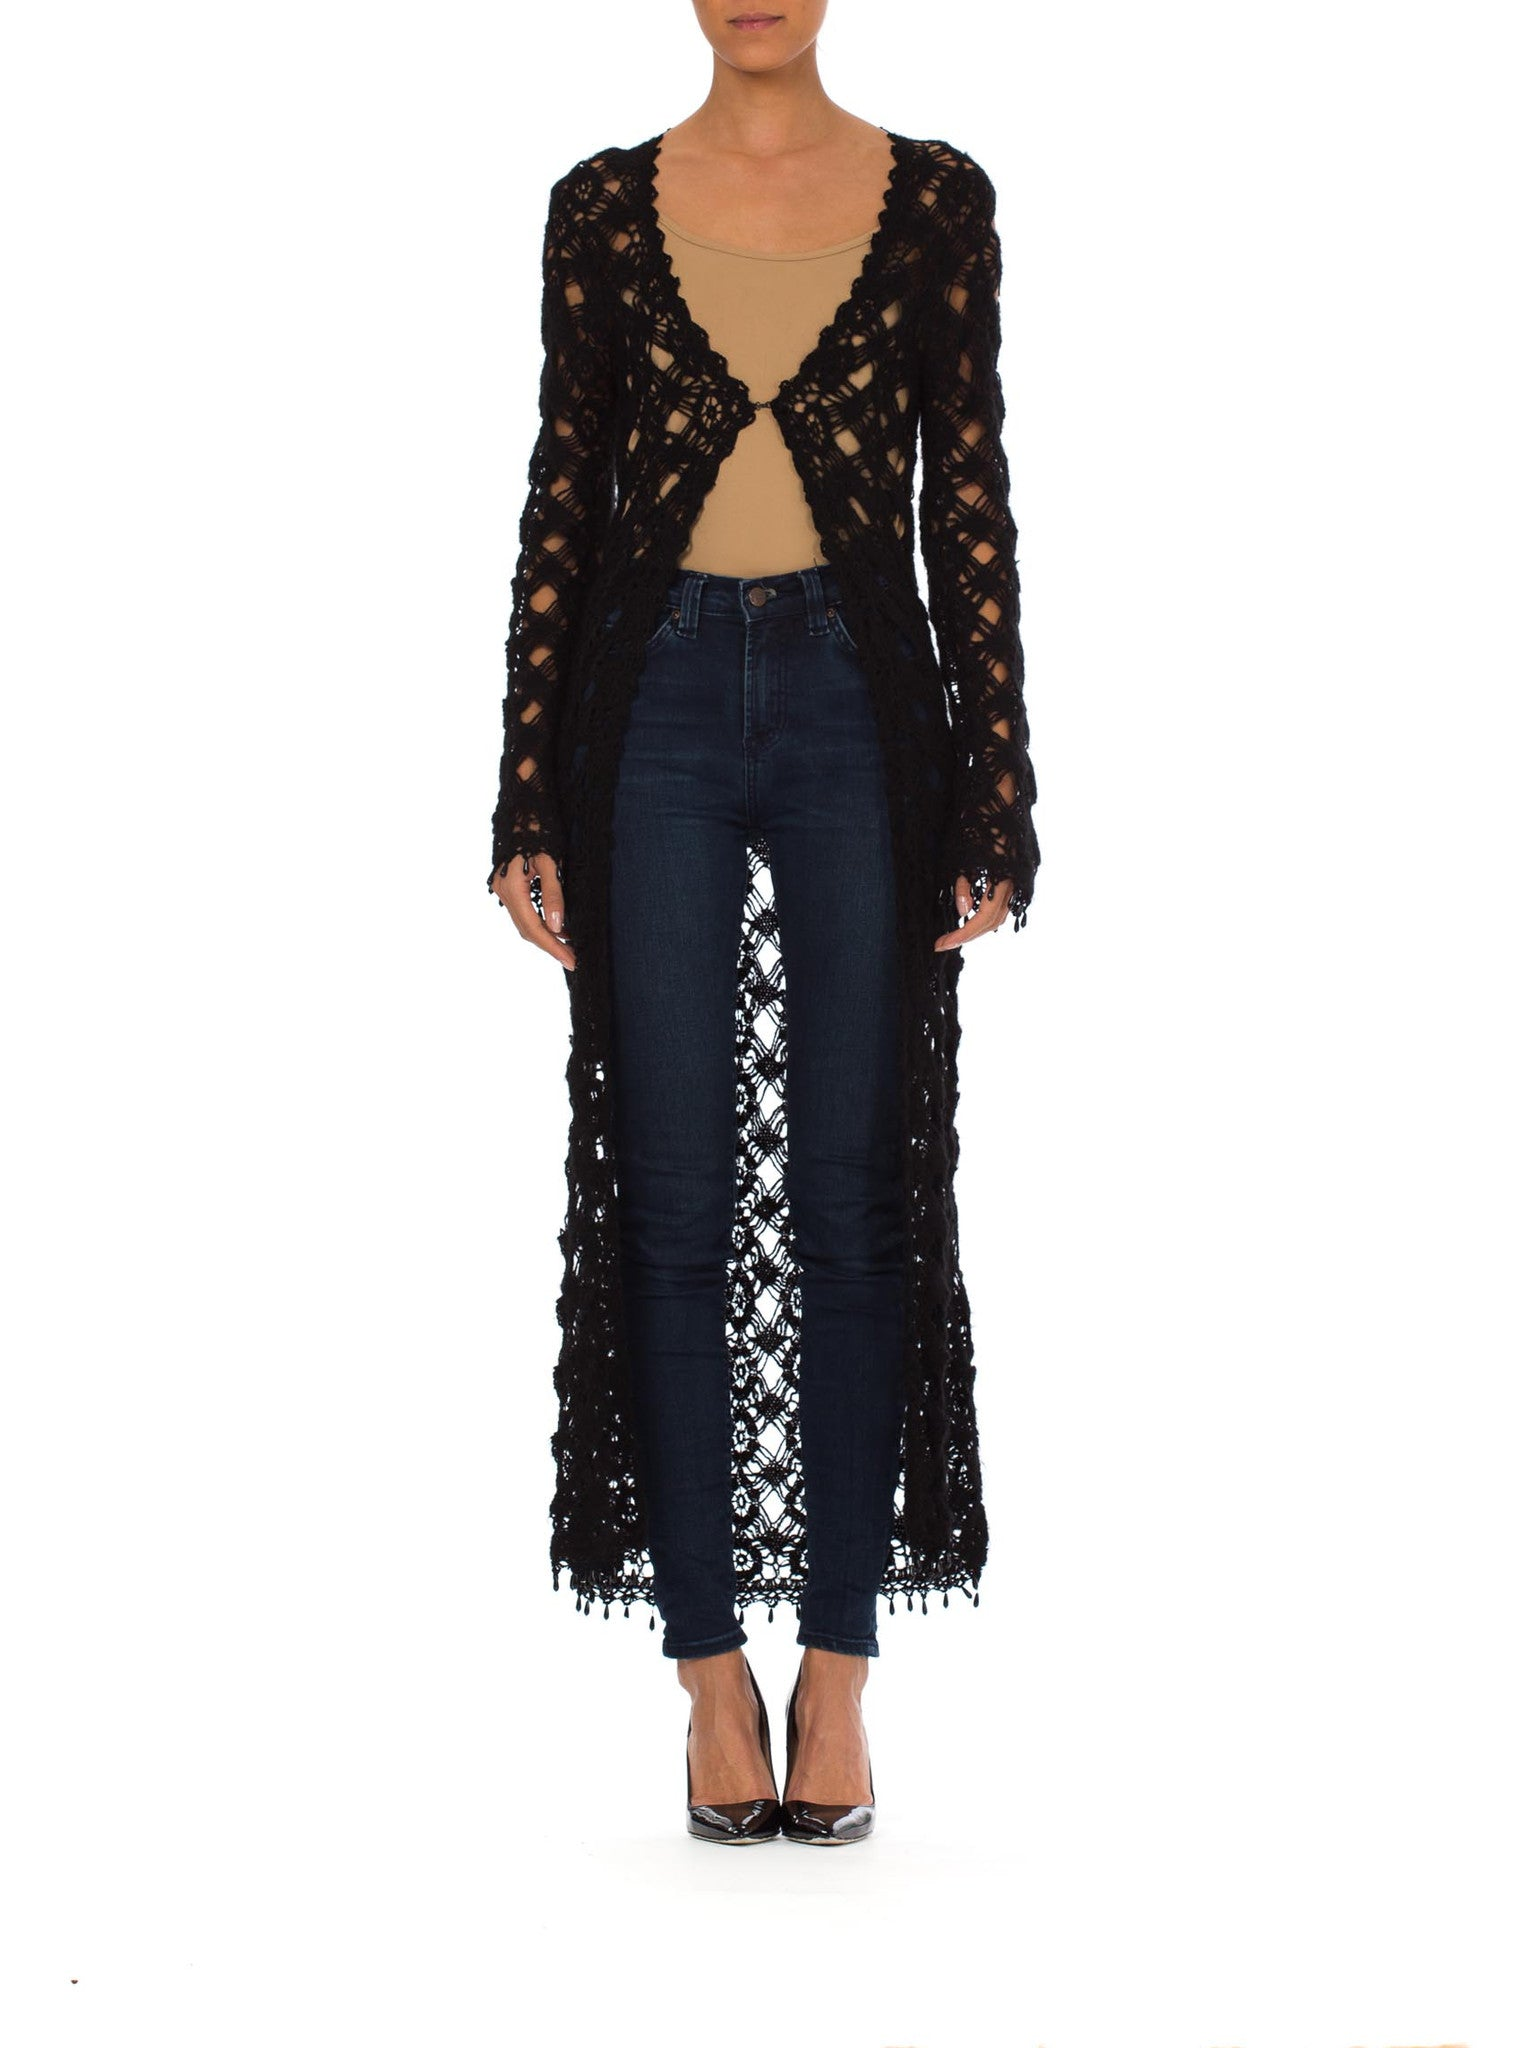 1970s Boho Black Crochet Duster Jacket Beaded Button Details